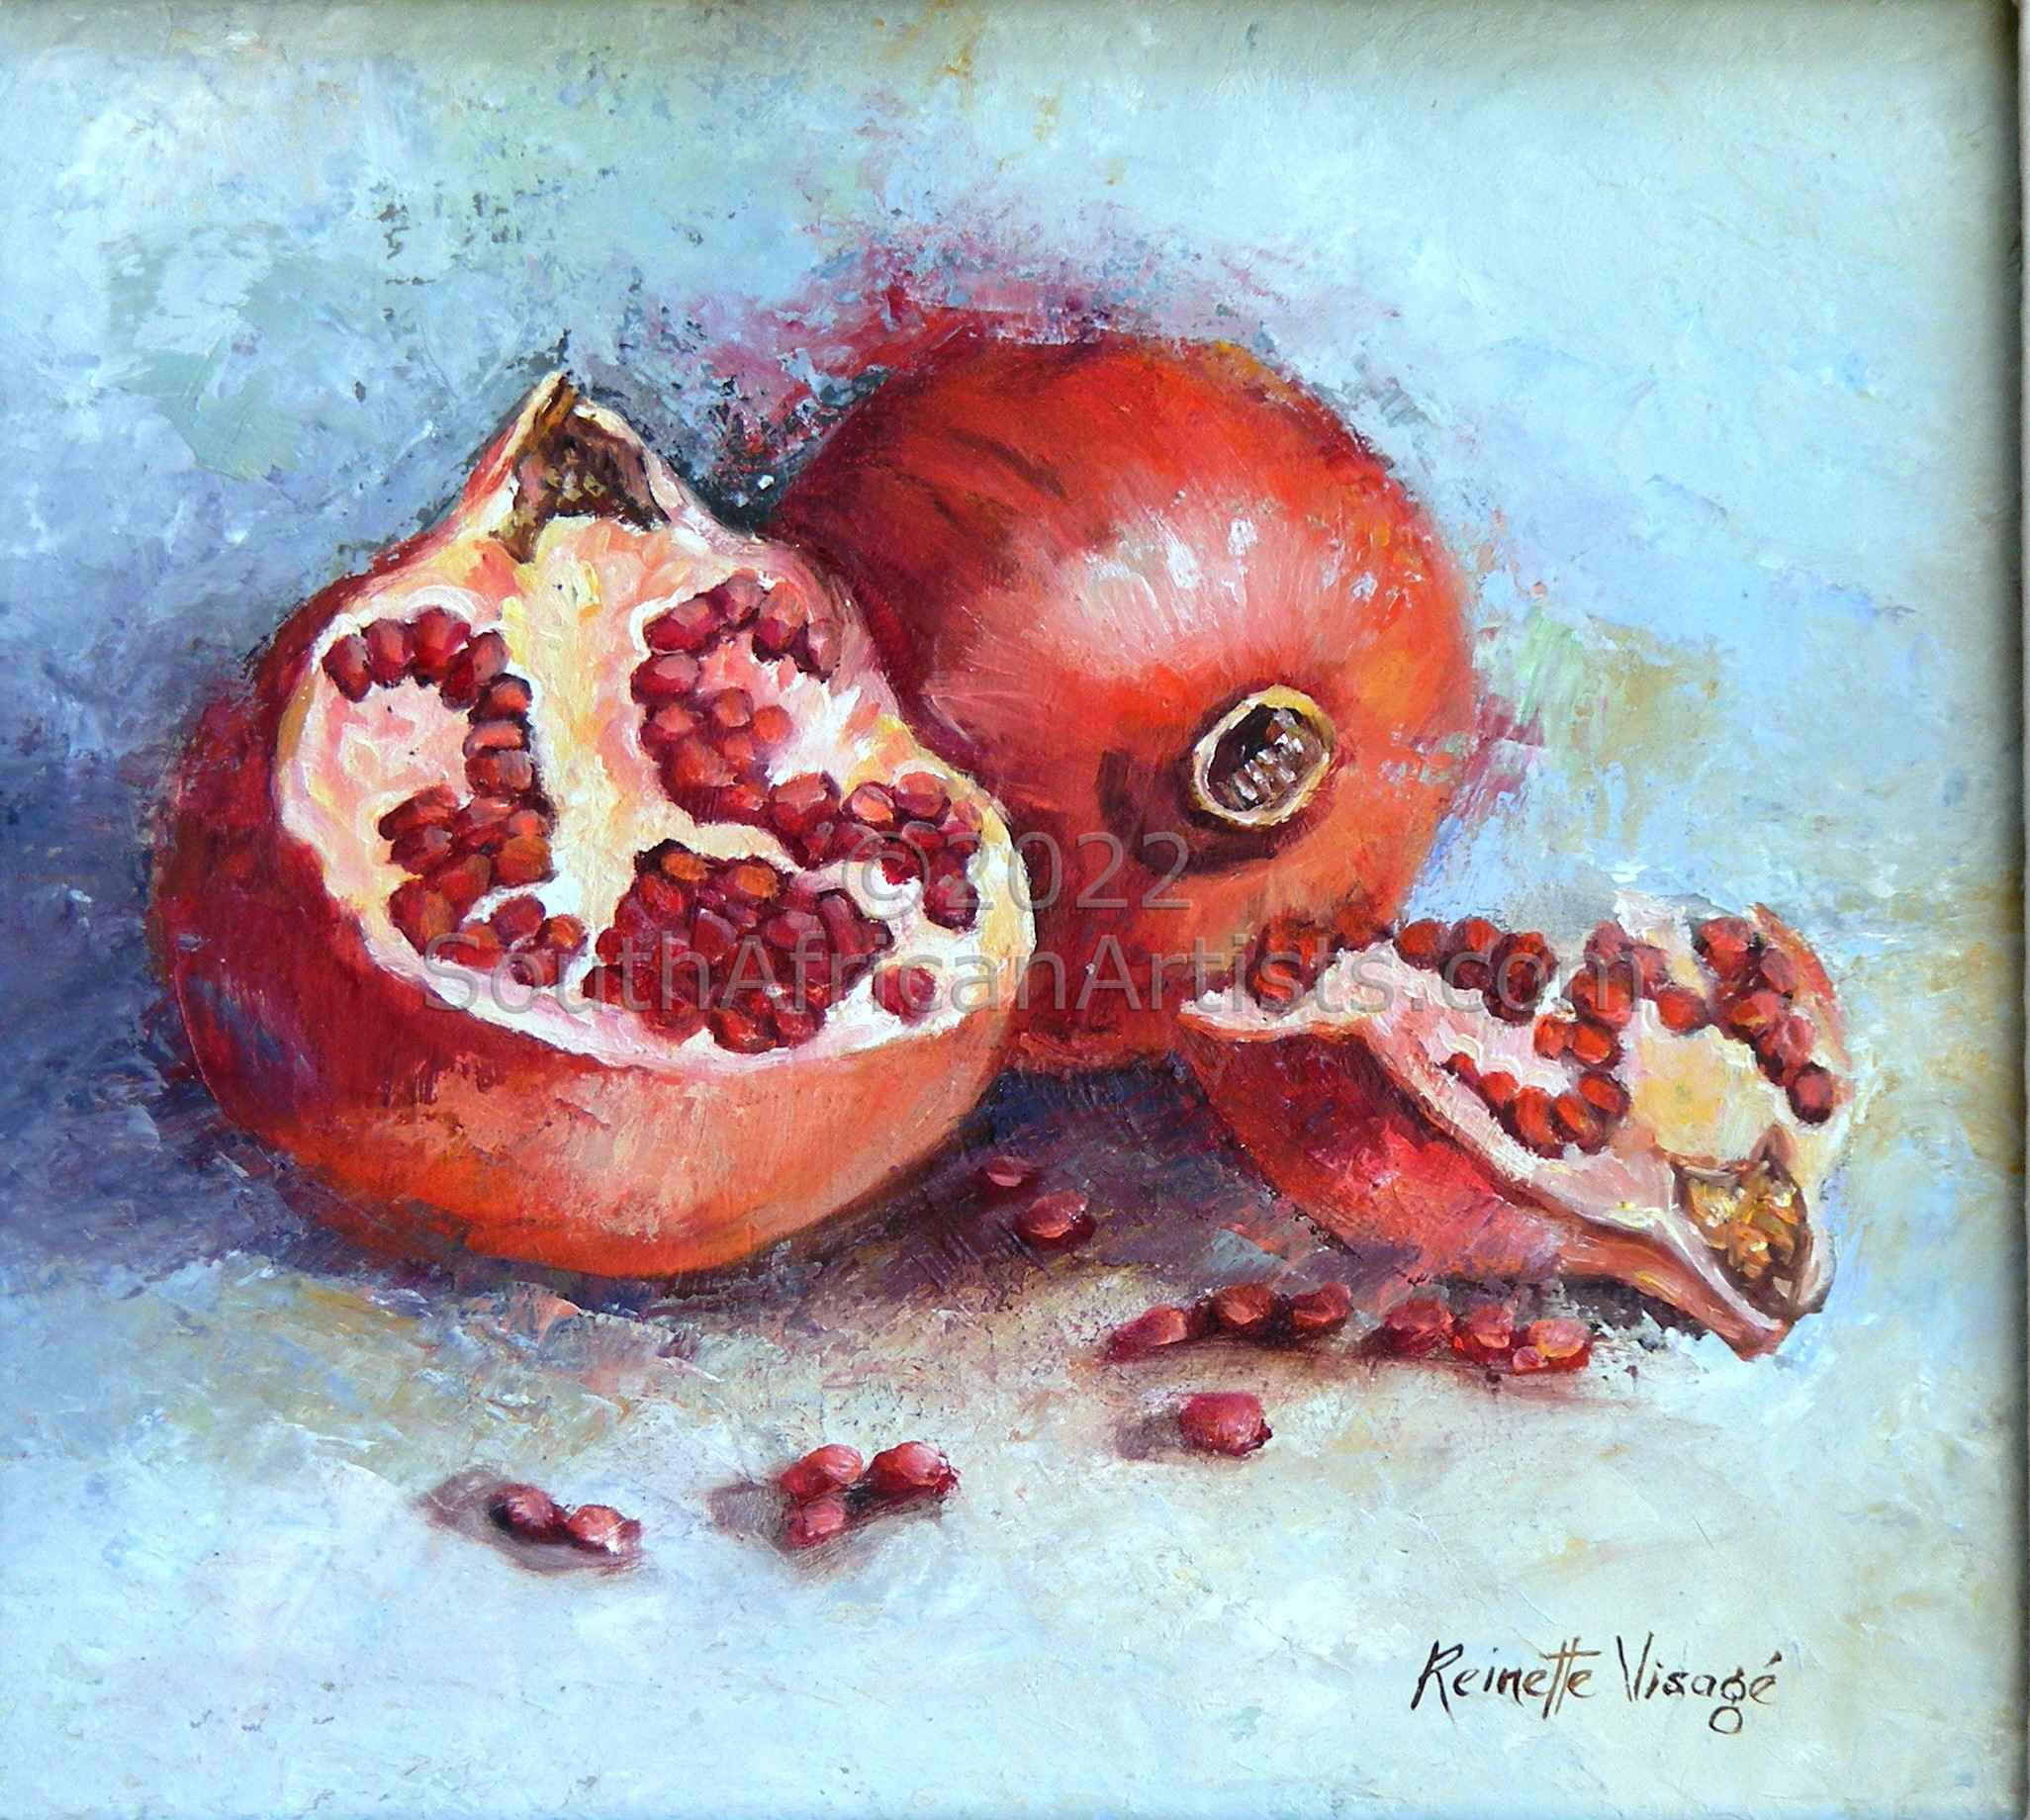 Pomegranate Plus Halves